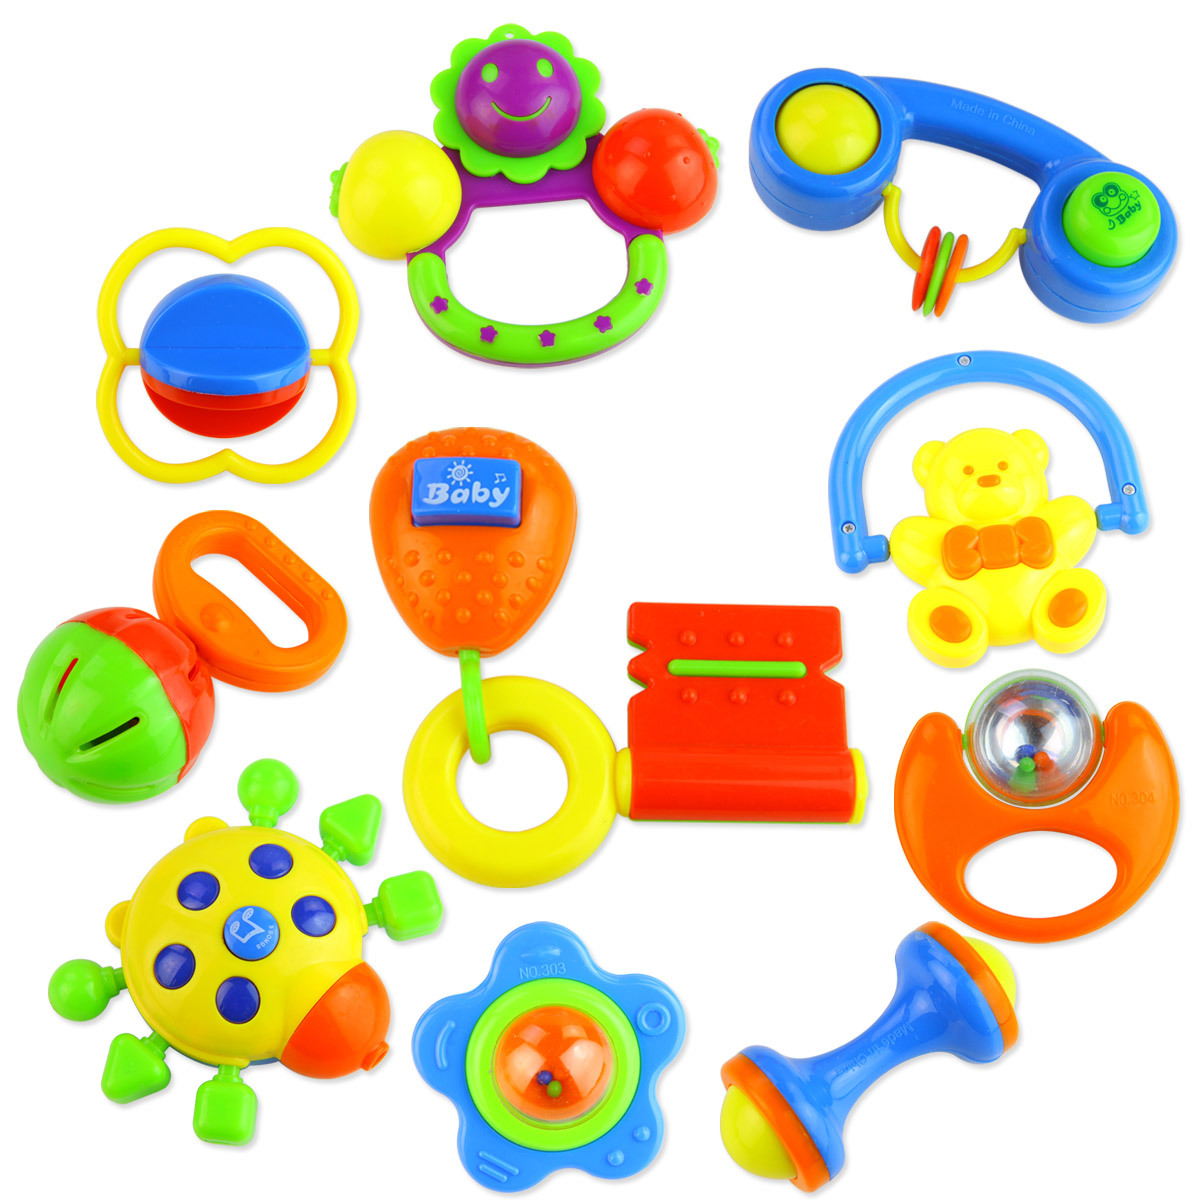 Baby Toys Clip Art : Baby toy images clipart best